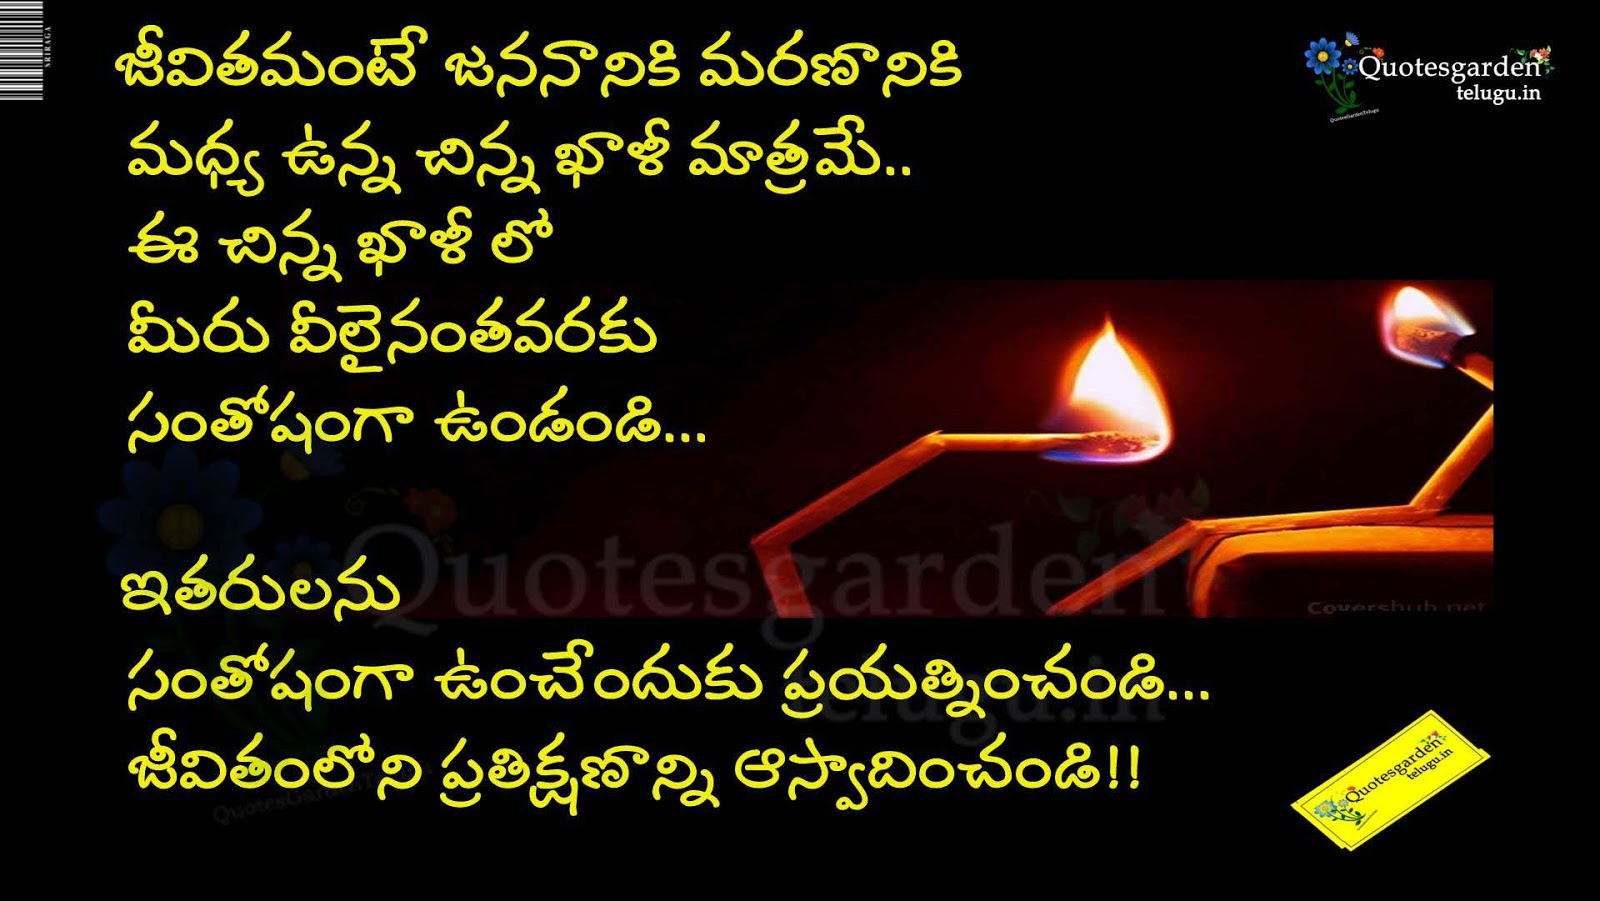 Heart Touching Inspirational Quotes In Telugu Gallery